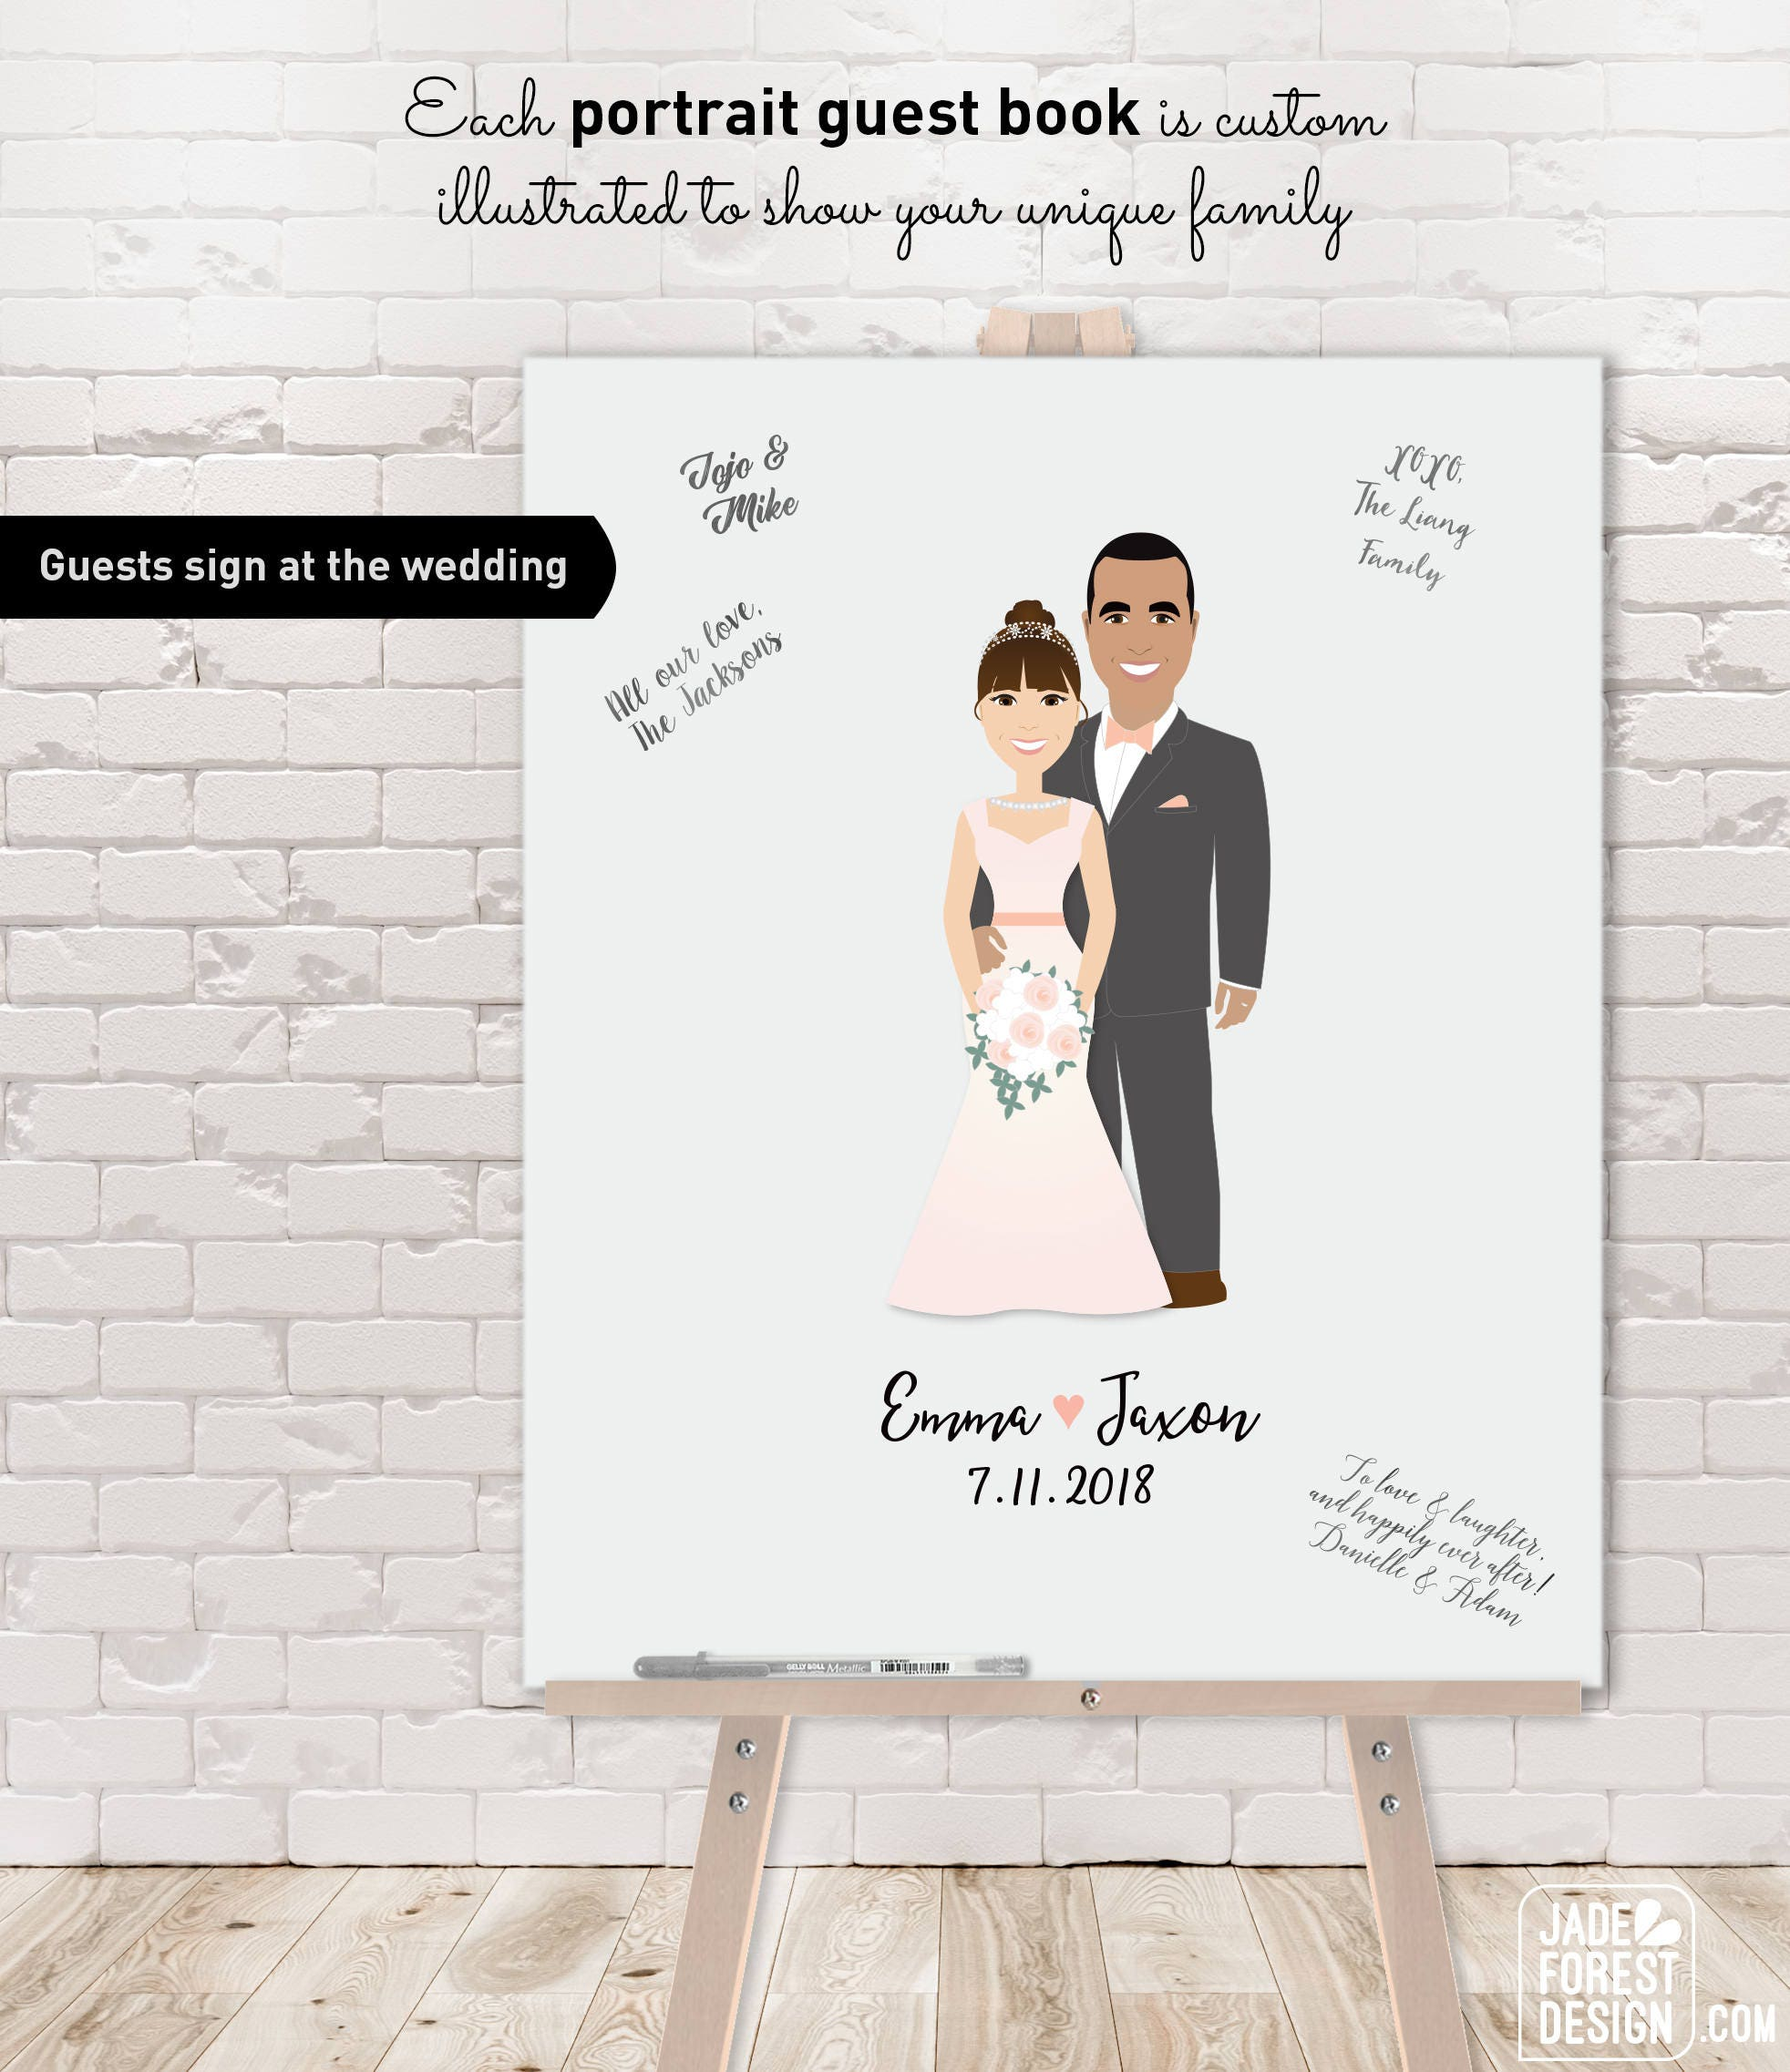 959374fca24 Wedding Guest Book Alternative Canvas – Custom Cartoon Portrait Couple for  Unique Wedding Guest Book Sign as Canvas, Paper or Printable